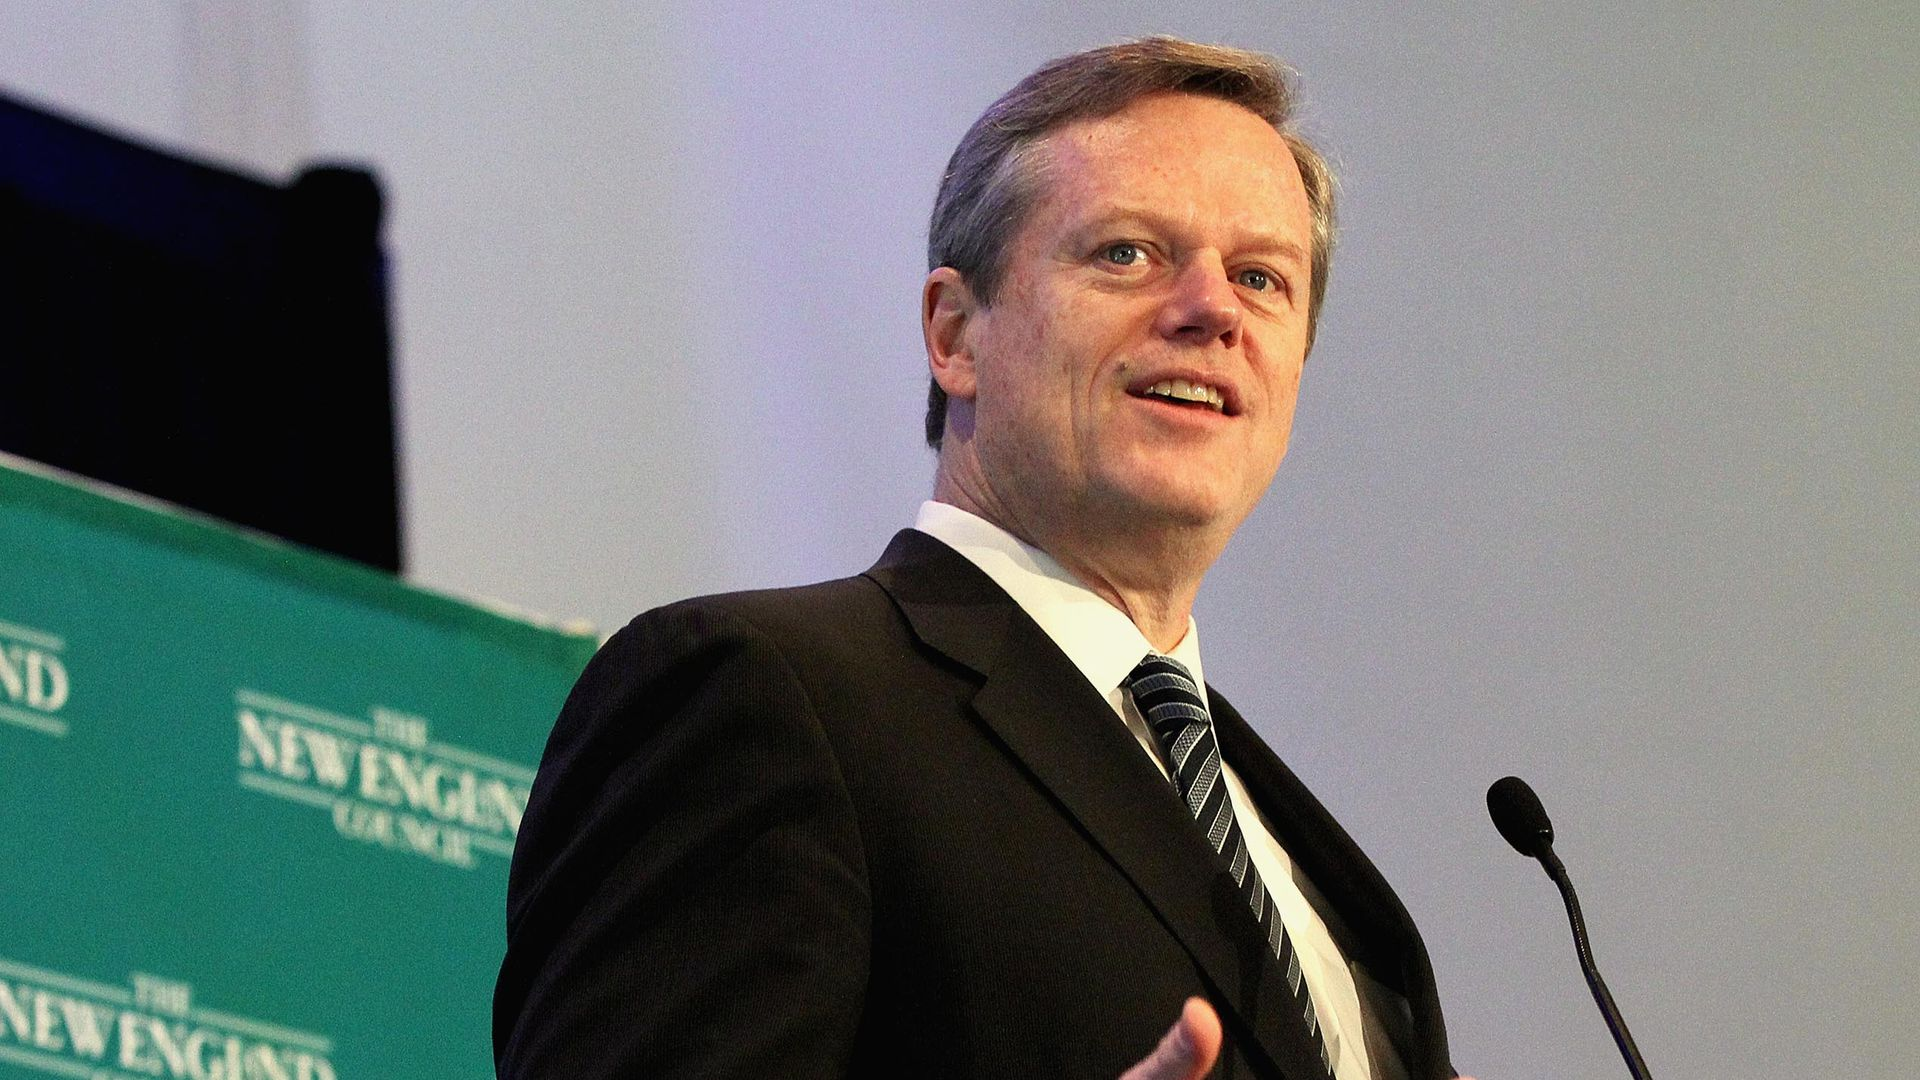 Massachusetts Gov. Charlie Baker (R). Photo: Wendy Maeda/The Boston Globe via Getty Images